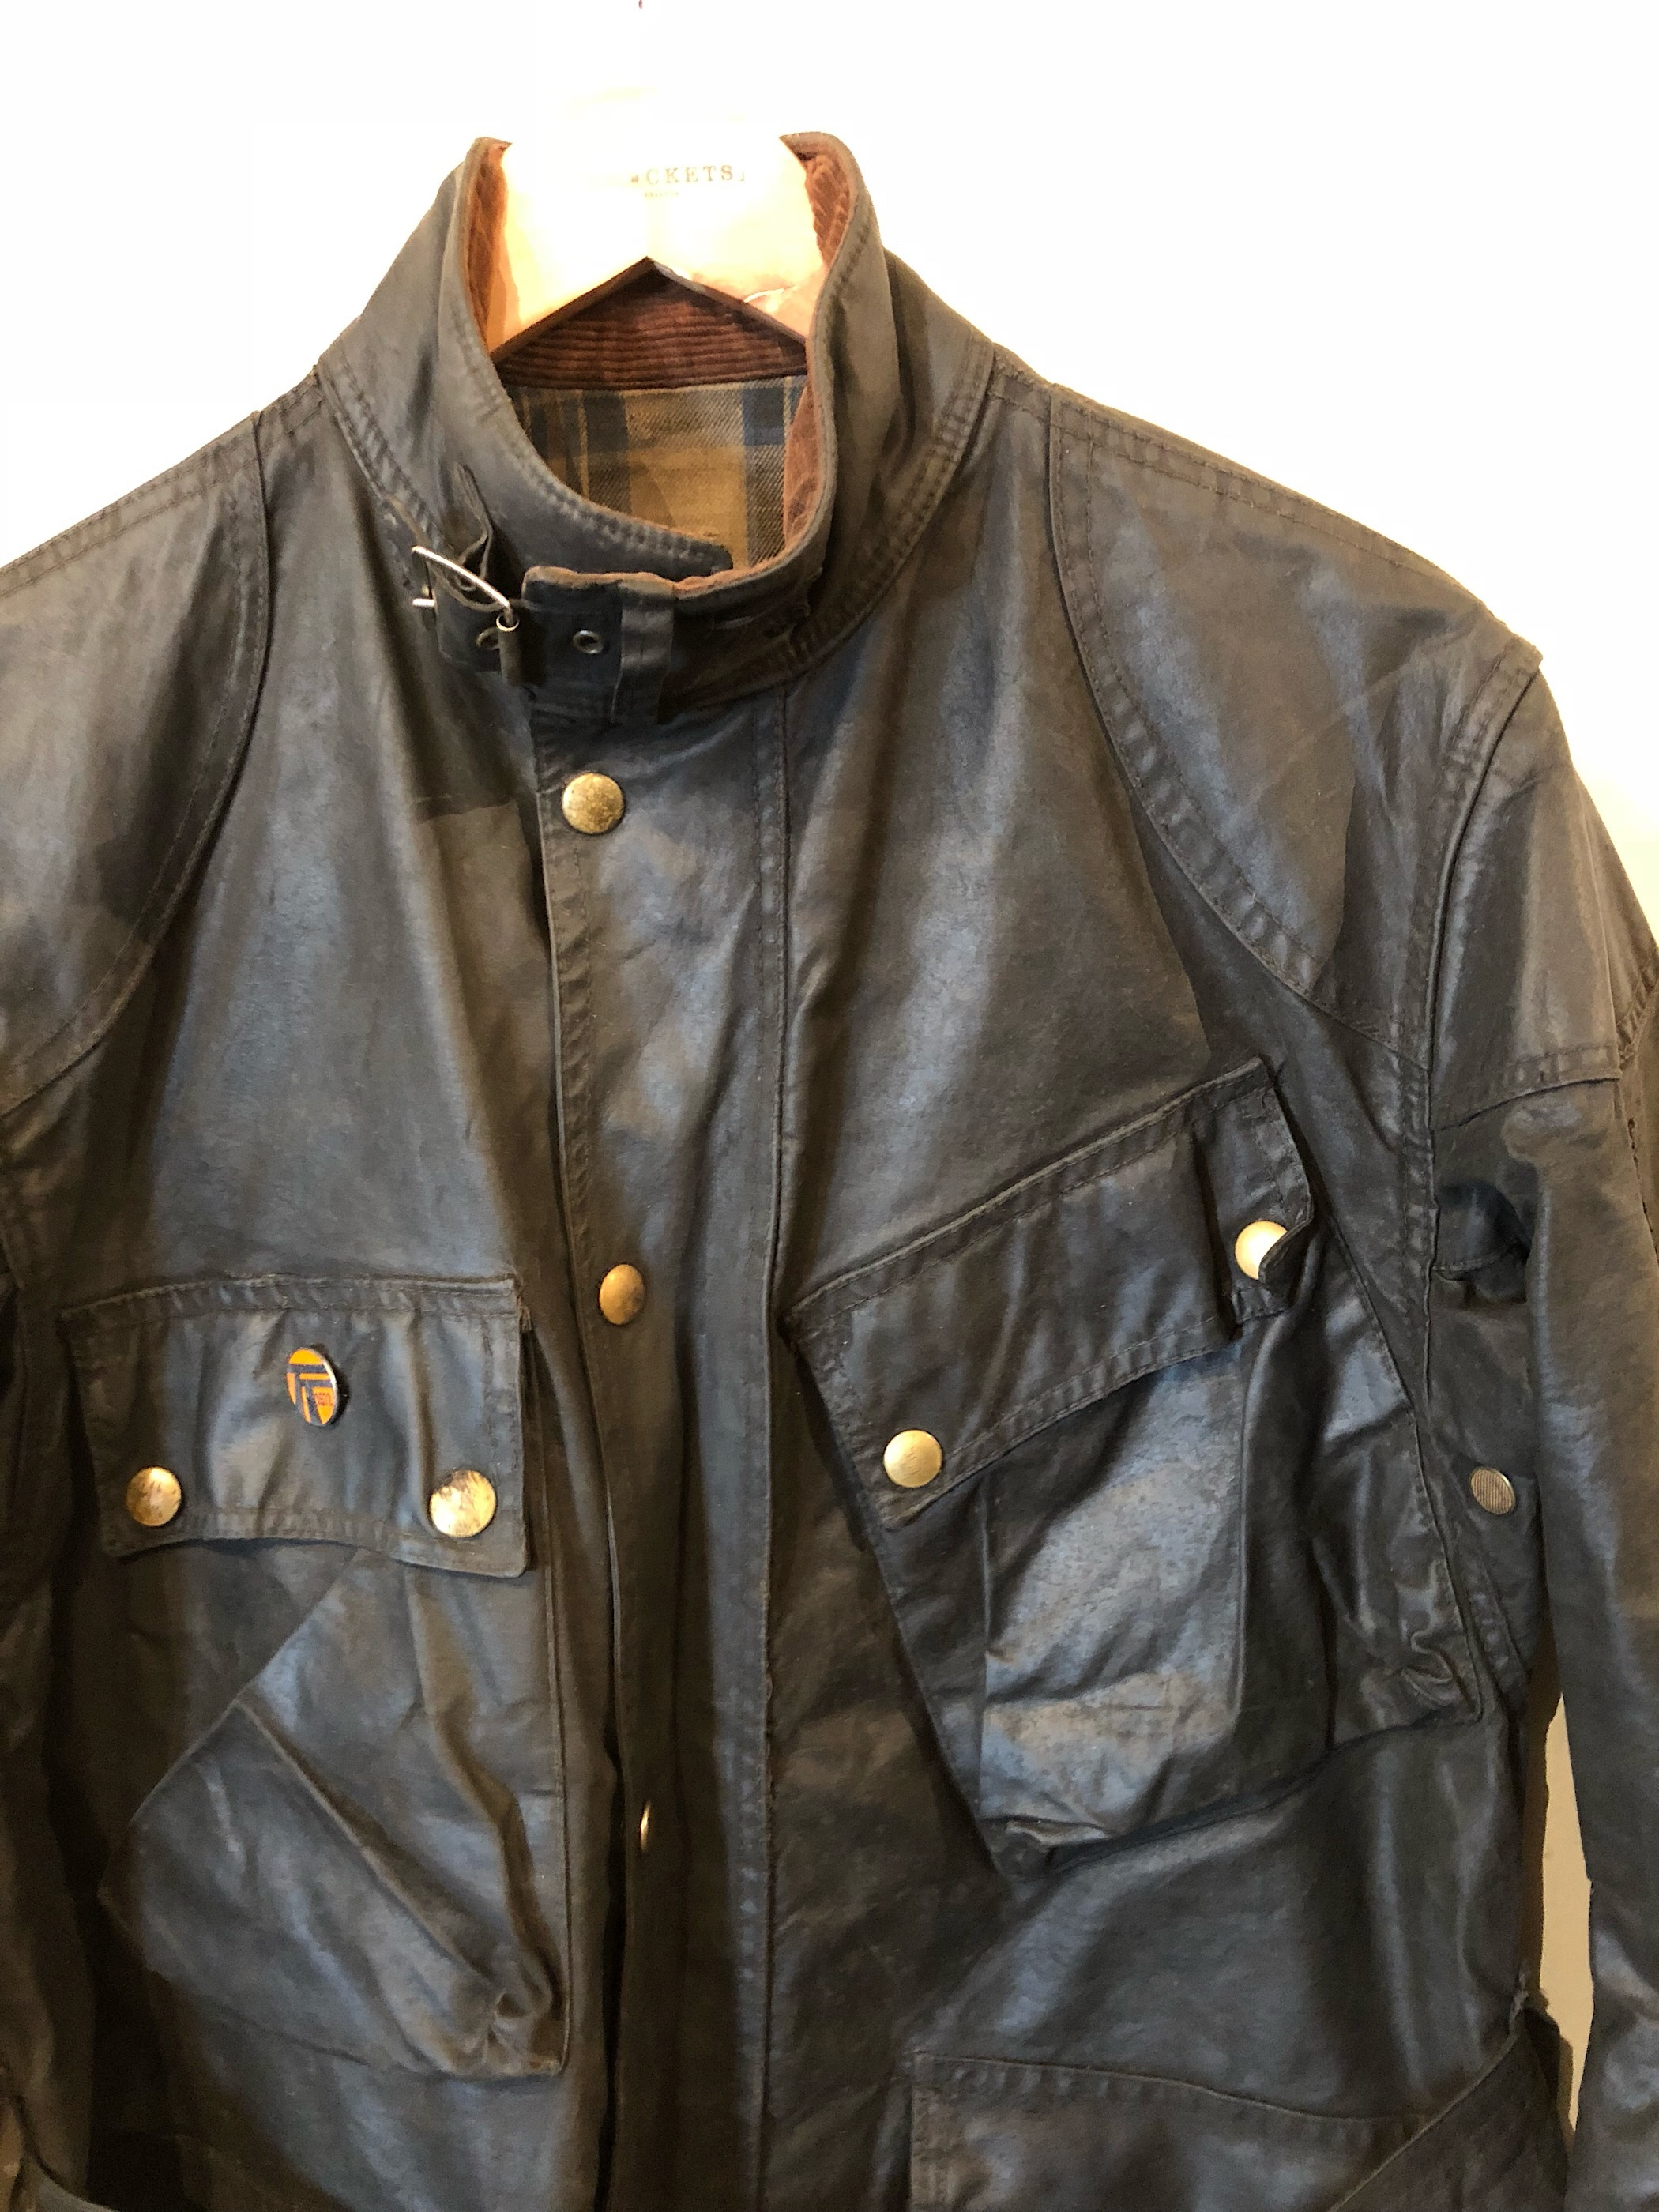 1960s Belstaff TRIAL MASTER waxed jacket